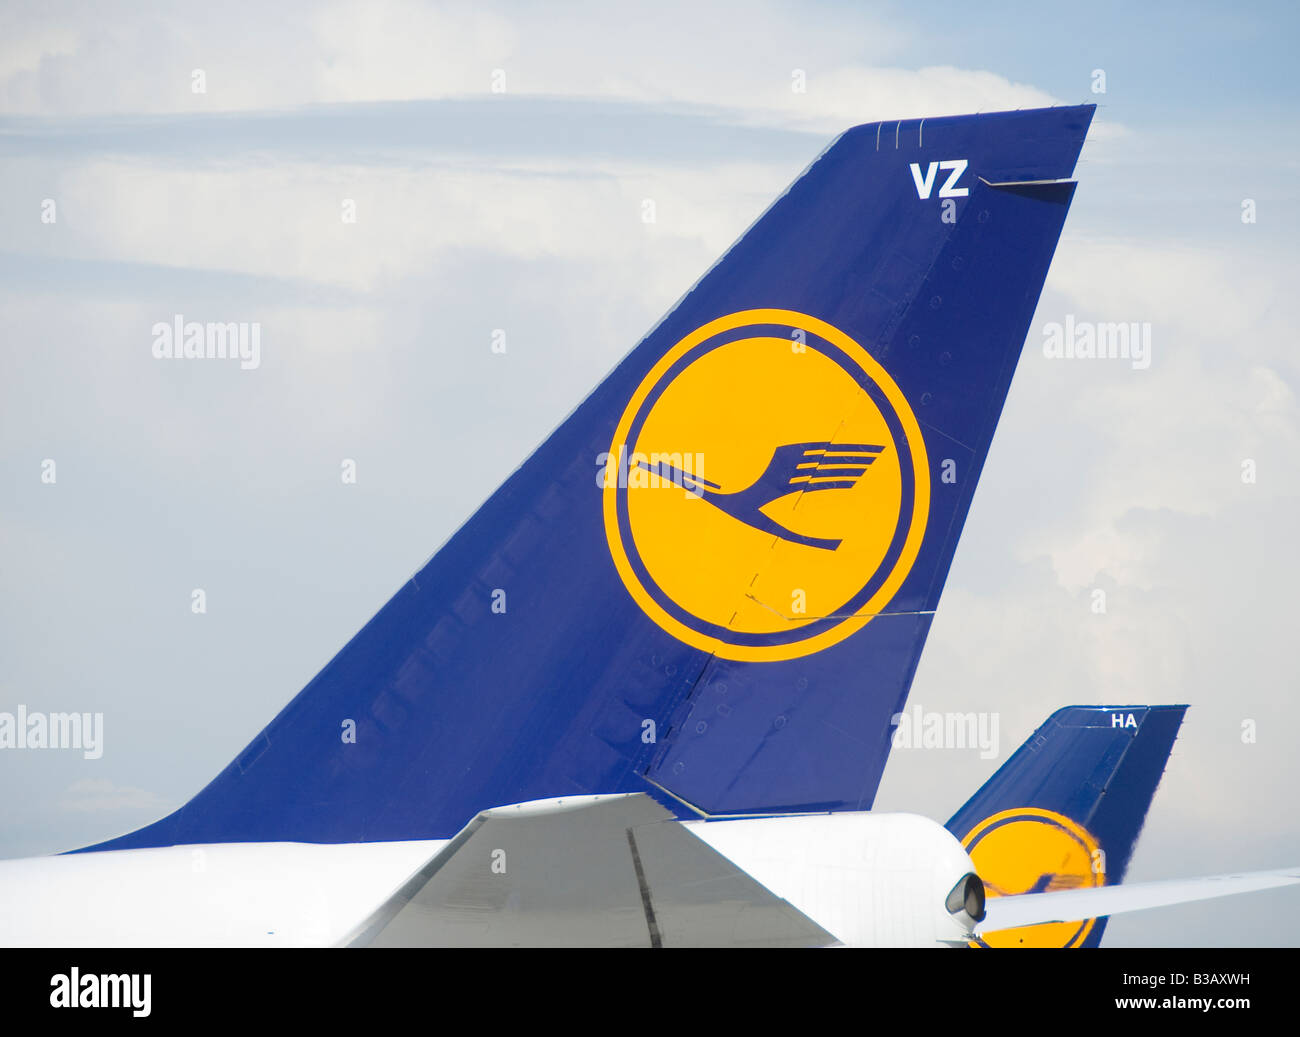 Lufthansa airlines - Stock Image